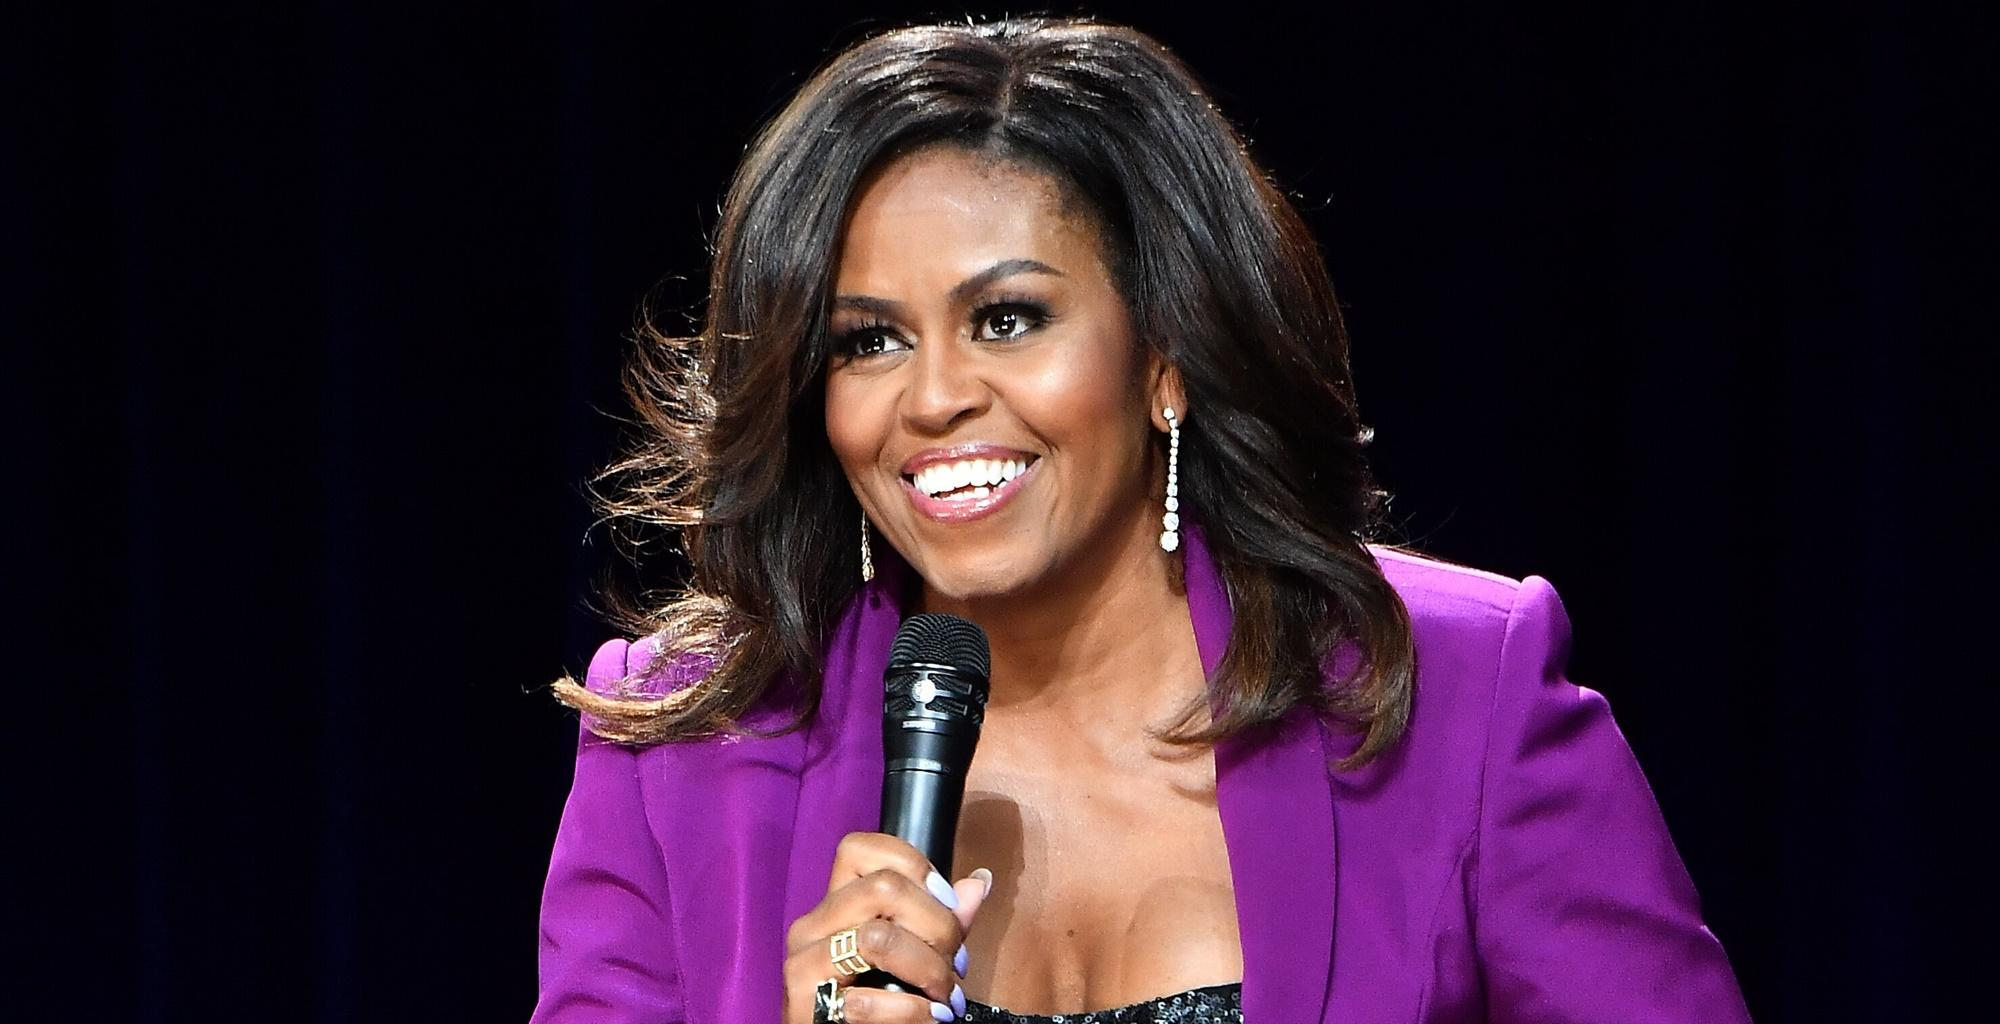 Michelle Obama Might Have Dissed Donald Trump While Talking About Oprah Winfrey And Politics